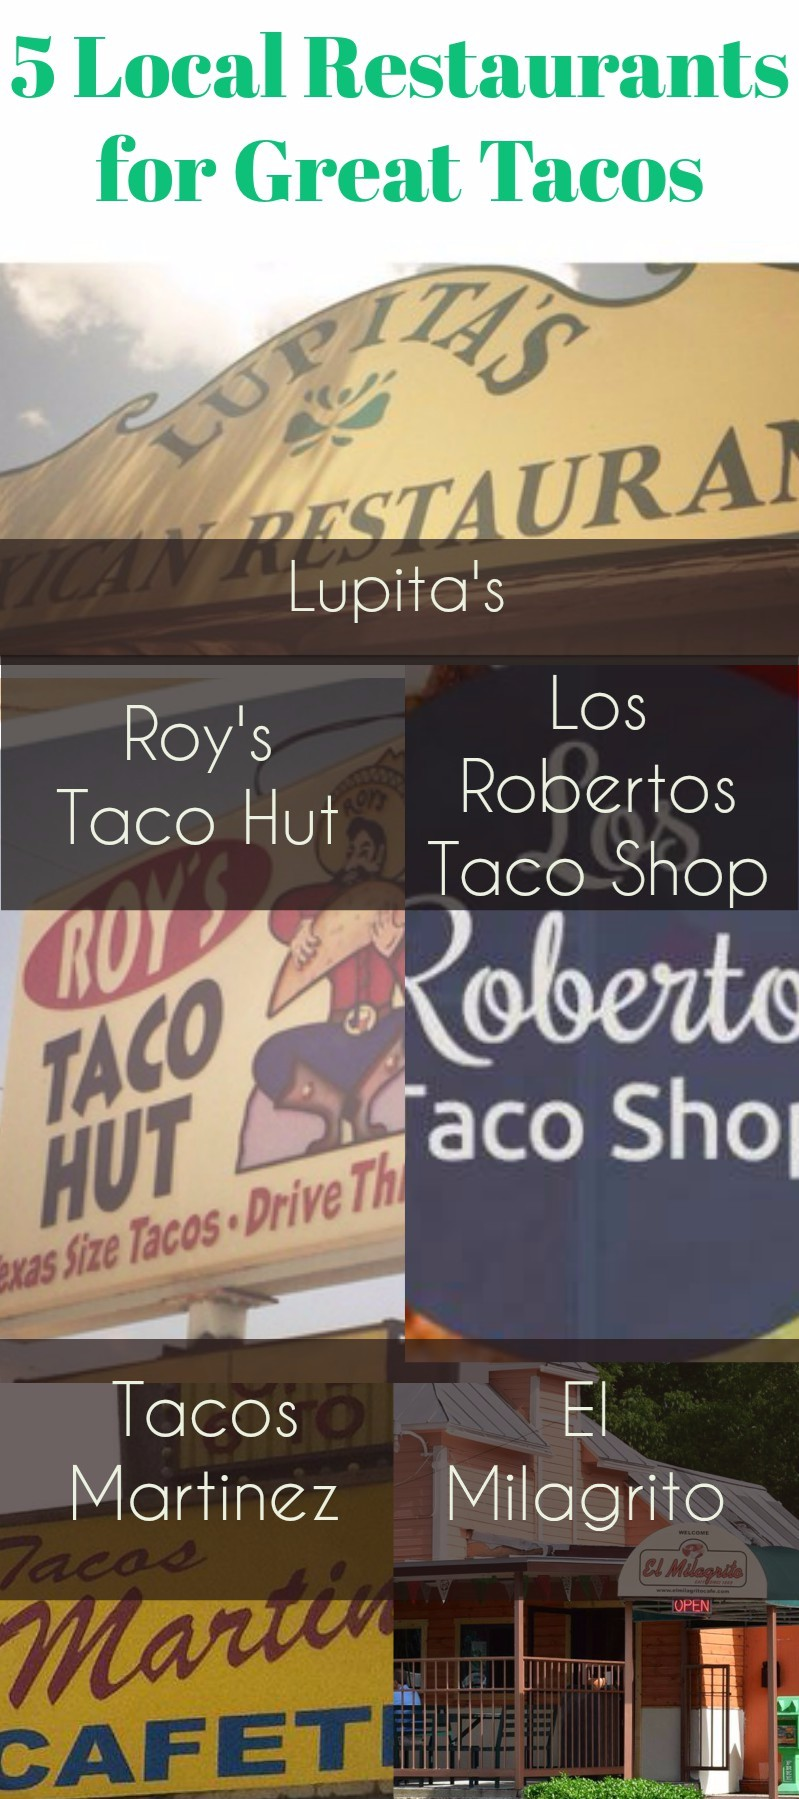 Clockwise from Top: Lupita's Mexican Restaurant (photo: Barbacoapparel archives); Los Robertos Taco Shop (photo: www.facebook.com/LosRobertosIngram); El Milagrito Cafe (photo: www.facebook.com/elmilagrito); Tacos Martinez (photo: www.facebook.com/Tacos-Martinez-131552956877313); Roy's Taco Hut (photo: Barbacoapparel archives)